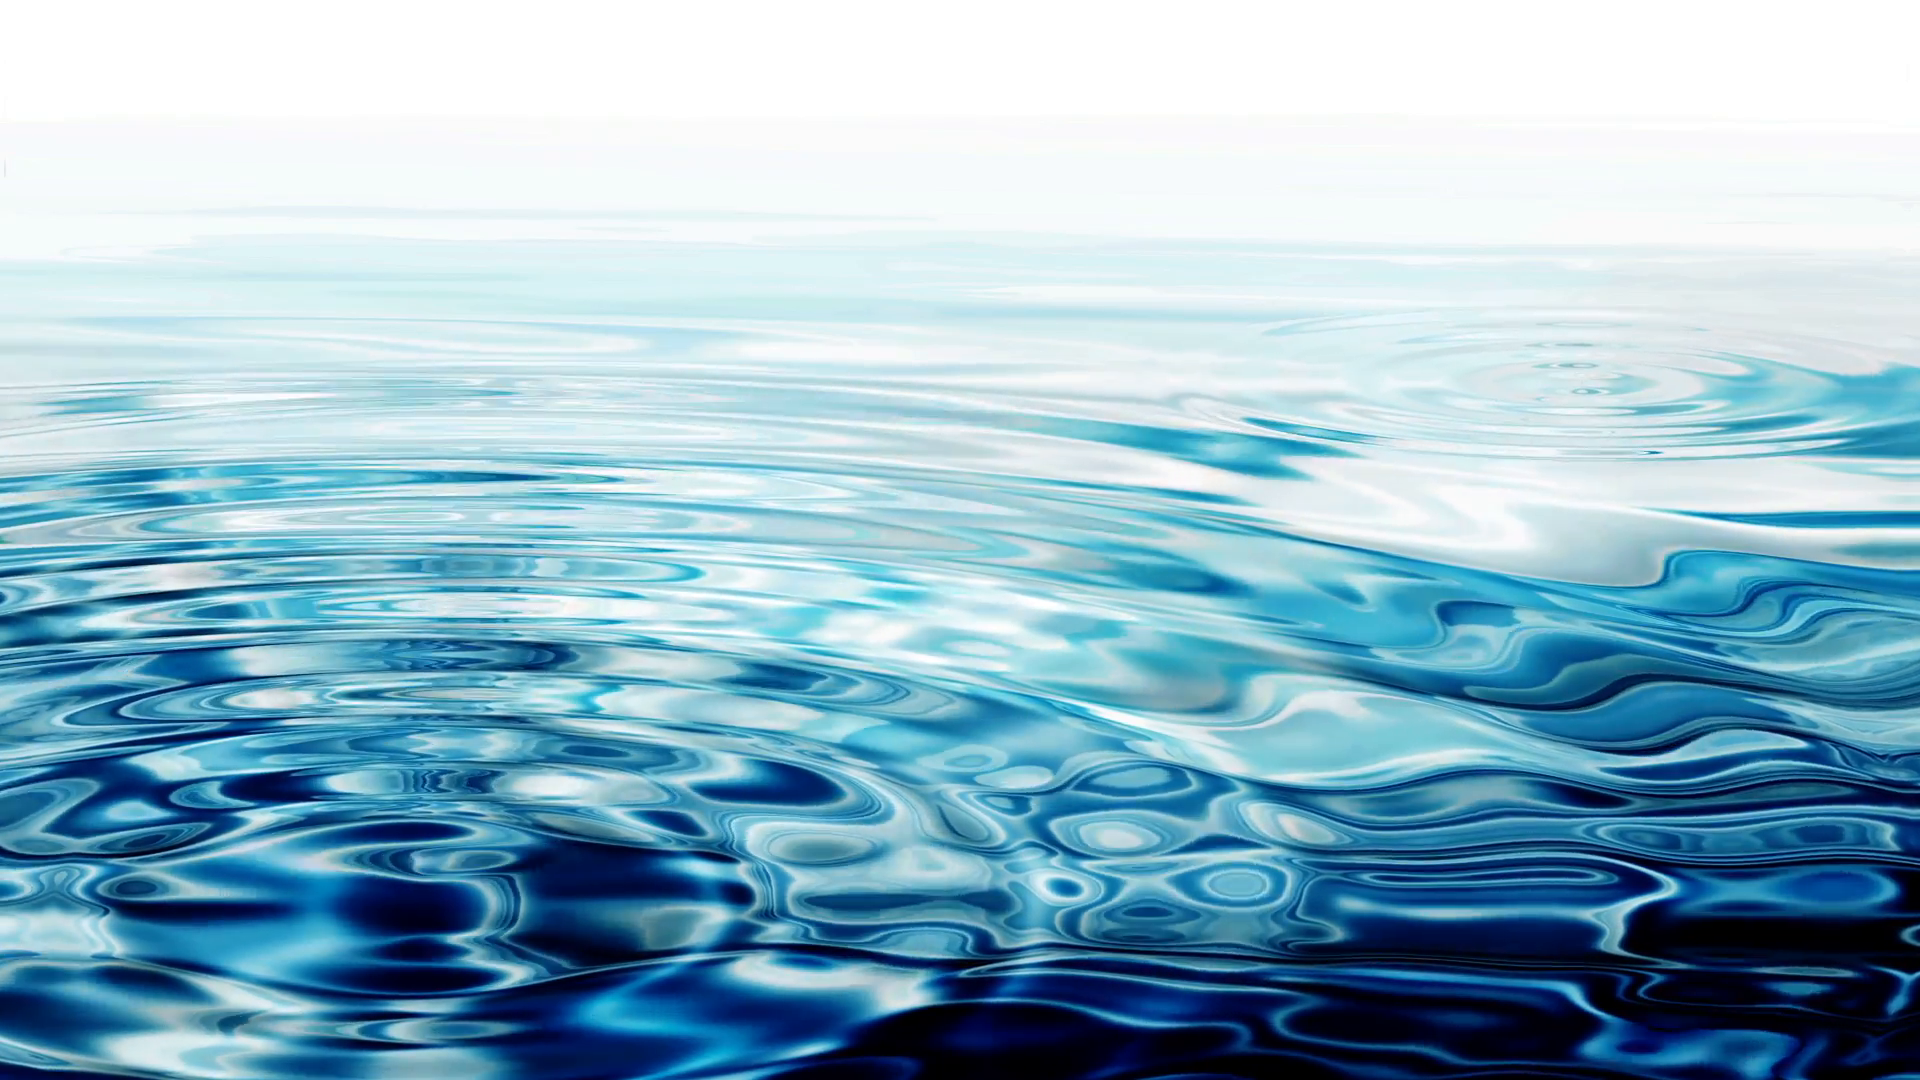 Crystal Clear Blue Water - Crystal clear water ripples on white ...